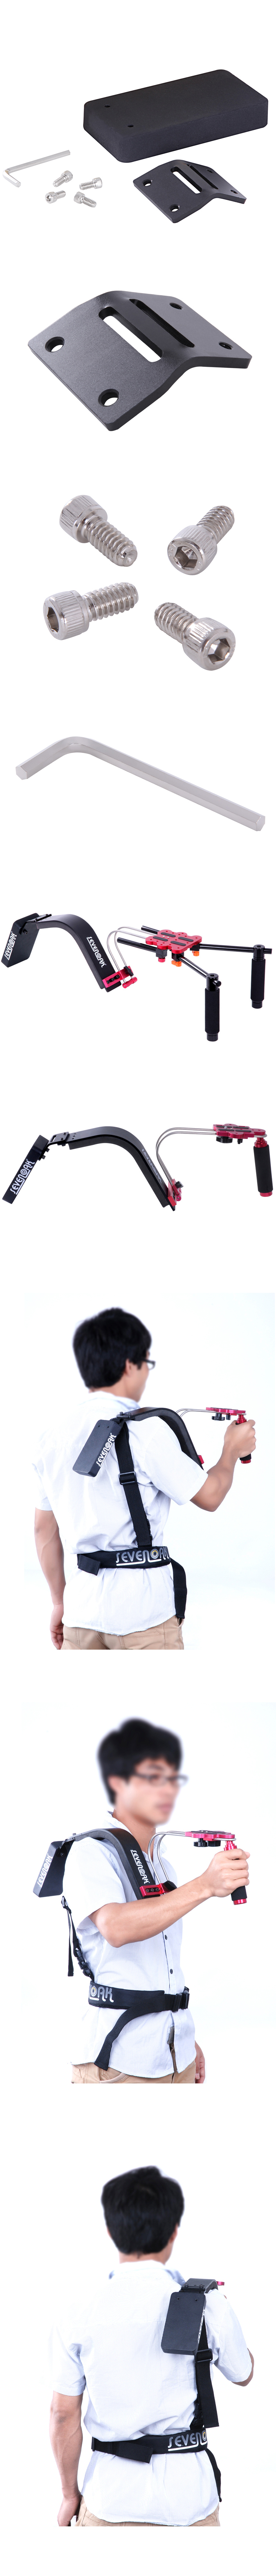 Counter Weight SK-R01CW【Camera Rigs】